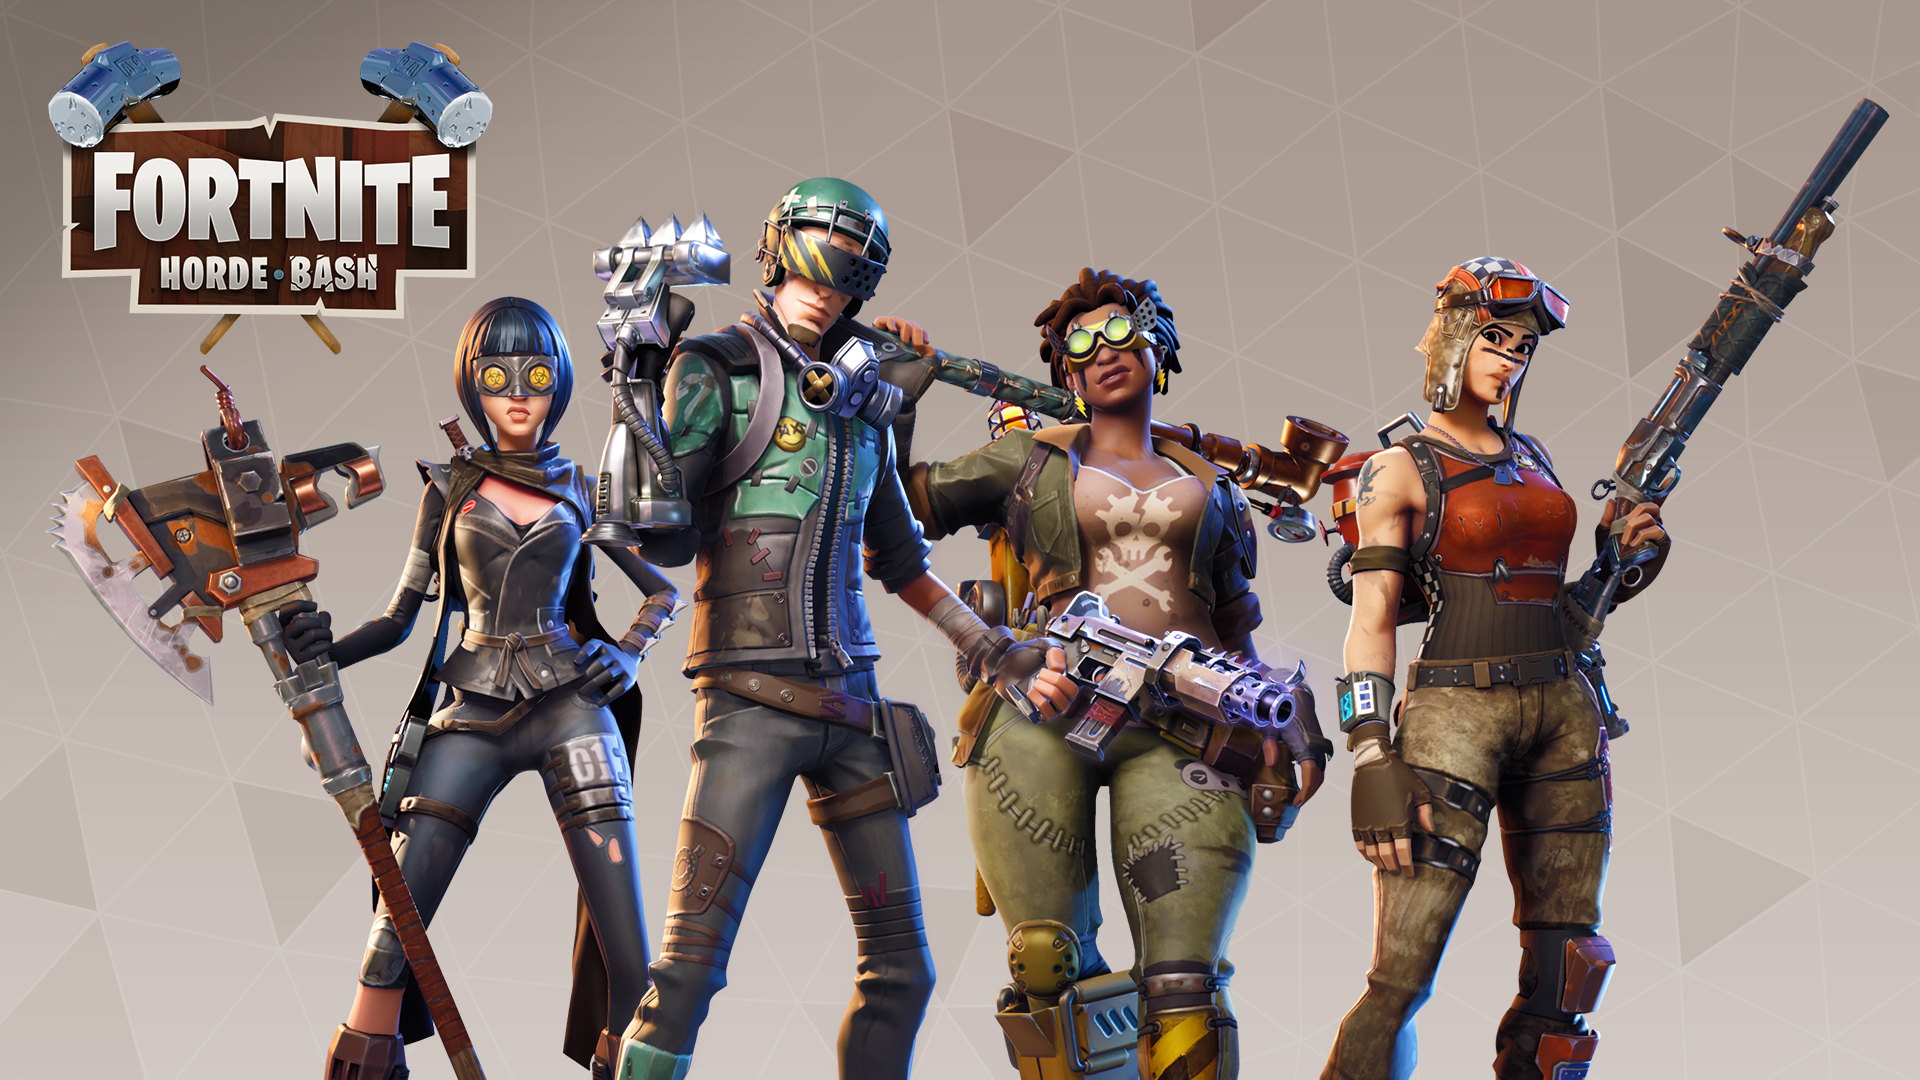 Horde bash update 1 7 patch notes - Fortnite save the world wallpaper ...